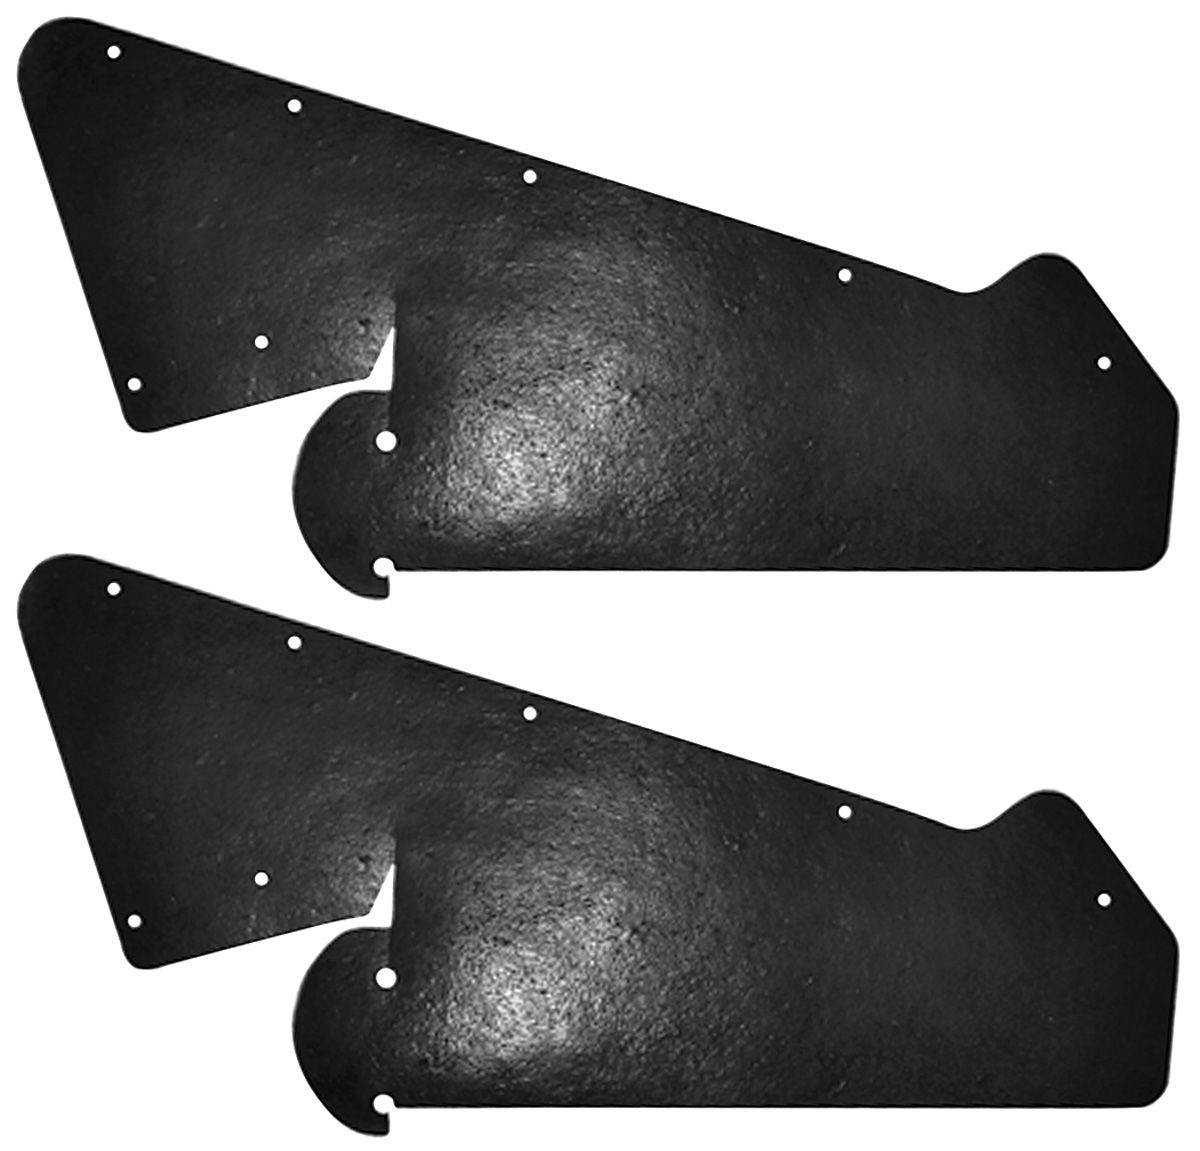 Photo of A-Arm Dust Shields, 1981-87 Monte Carlo